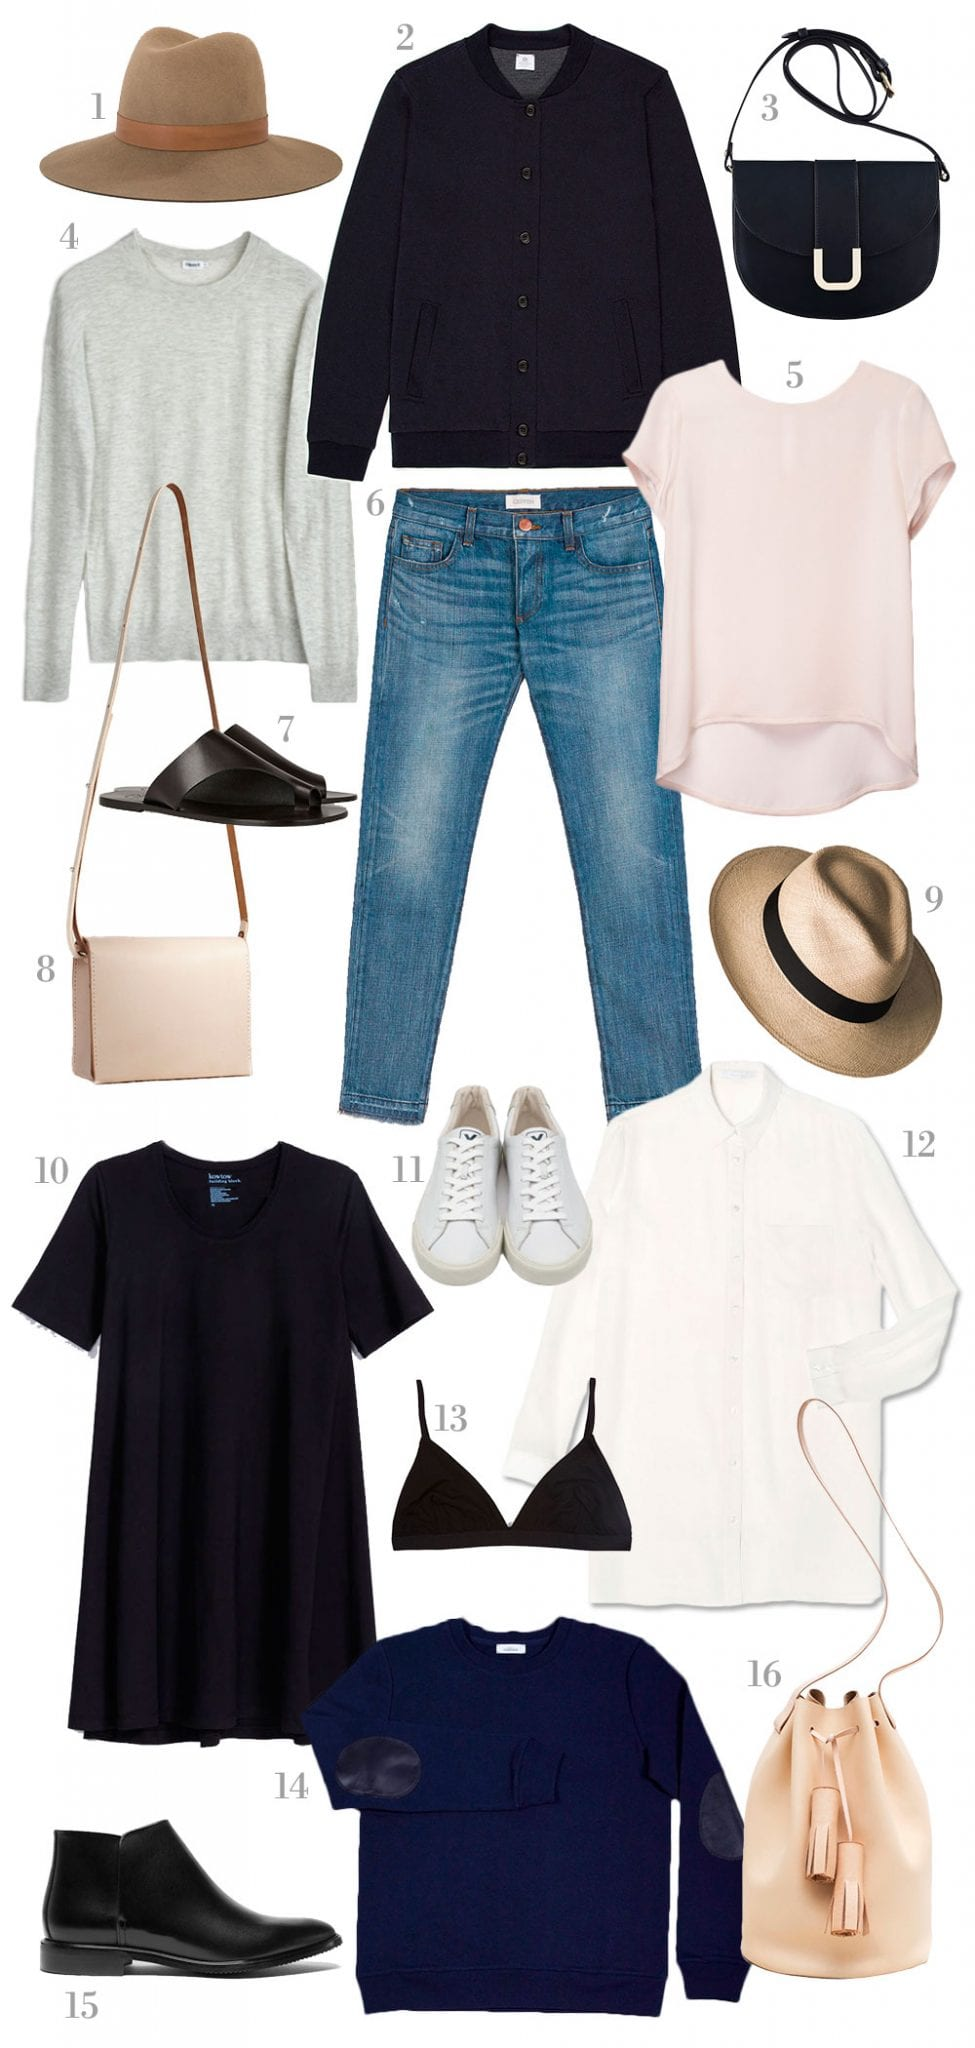 Style&Minimalism | Shopping List | Slow Fashion | 1. Janessa Leoné Clay Fedora in Light Brown | 2. Sunspel Vintage Wool Bomber Jacket | 3. A.P.C. Sac Soho Shoulder Bag in Black | 4. Filippa K Light Silk Pullover in Grey | 5. Cuyana Silk Tee in Blush | 6. Crippen Lover Jean in Light Vintage | 7. ATP Atelier Rosa Sandals in Black | 8. SGB Goods Natural Petite Messenger Bag | 9. Prymal Waterdrop Beige Toquilla Hat | 10. Kowtow Building Block Swing Dress in Black | 11. Veja Esplar Low Leather Trainers in White | 12. Marina London Blake Shirt in White | 13. Baserange Mississipi Bra in Black | 14. Maison Standards Le Sweatshirt Uni in Navy | 15. Everlane The Modern Ankle Boot in Black | 16. Building Block Bucket Bag in Nude